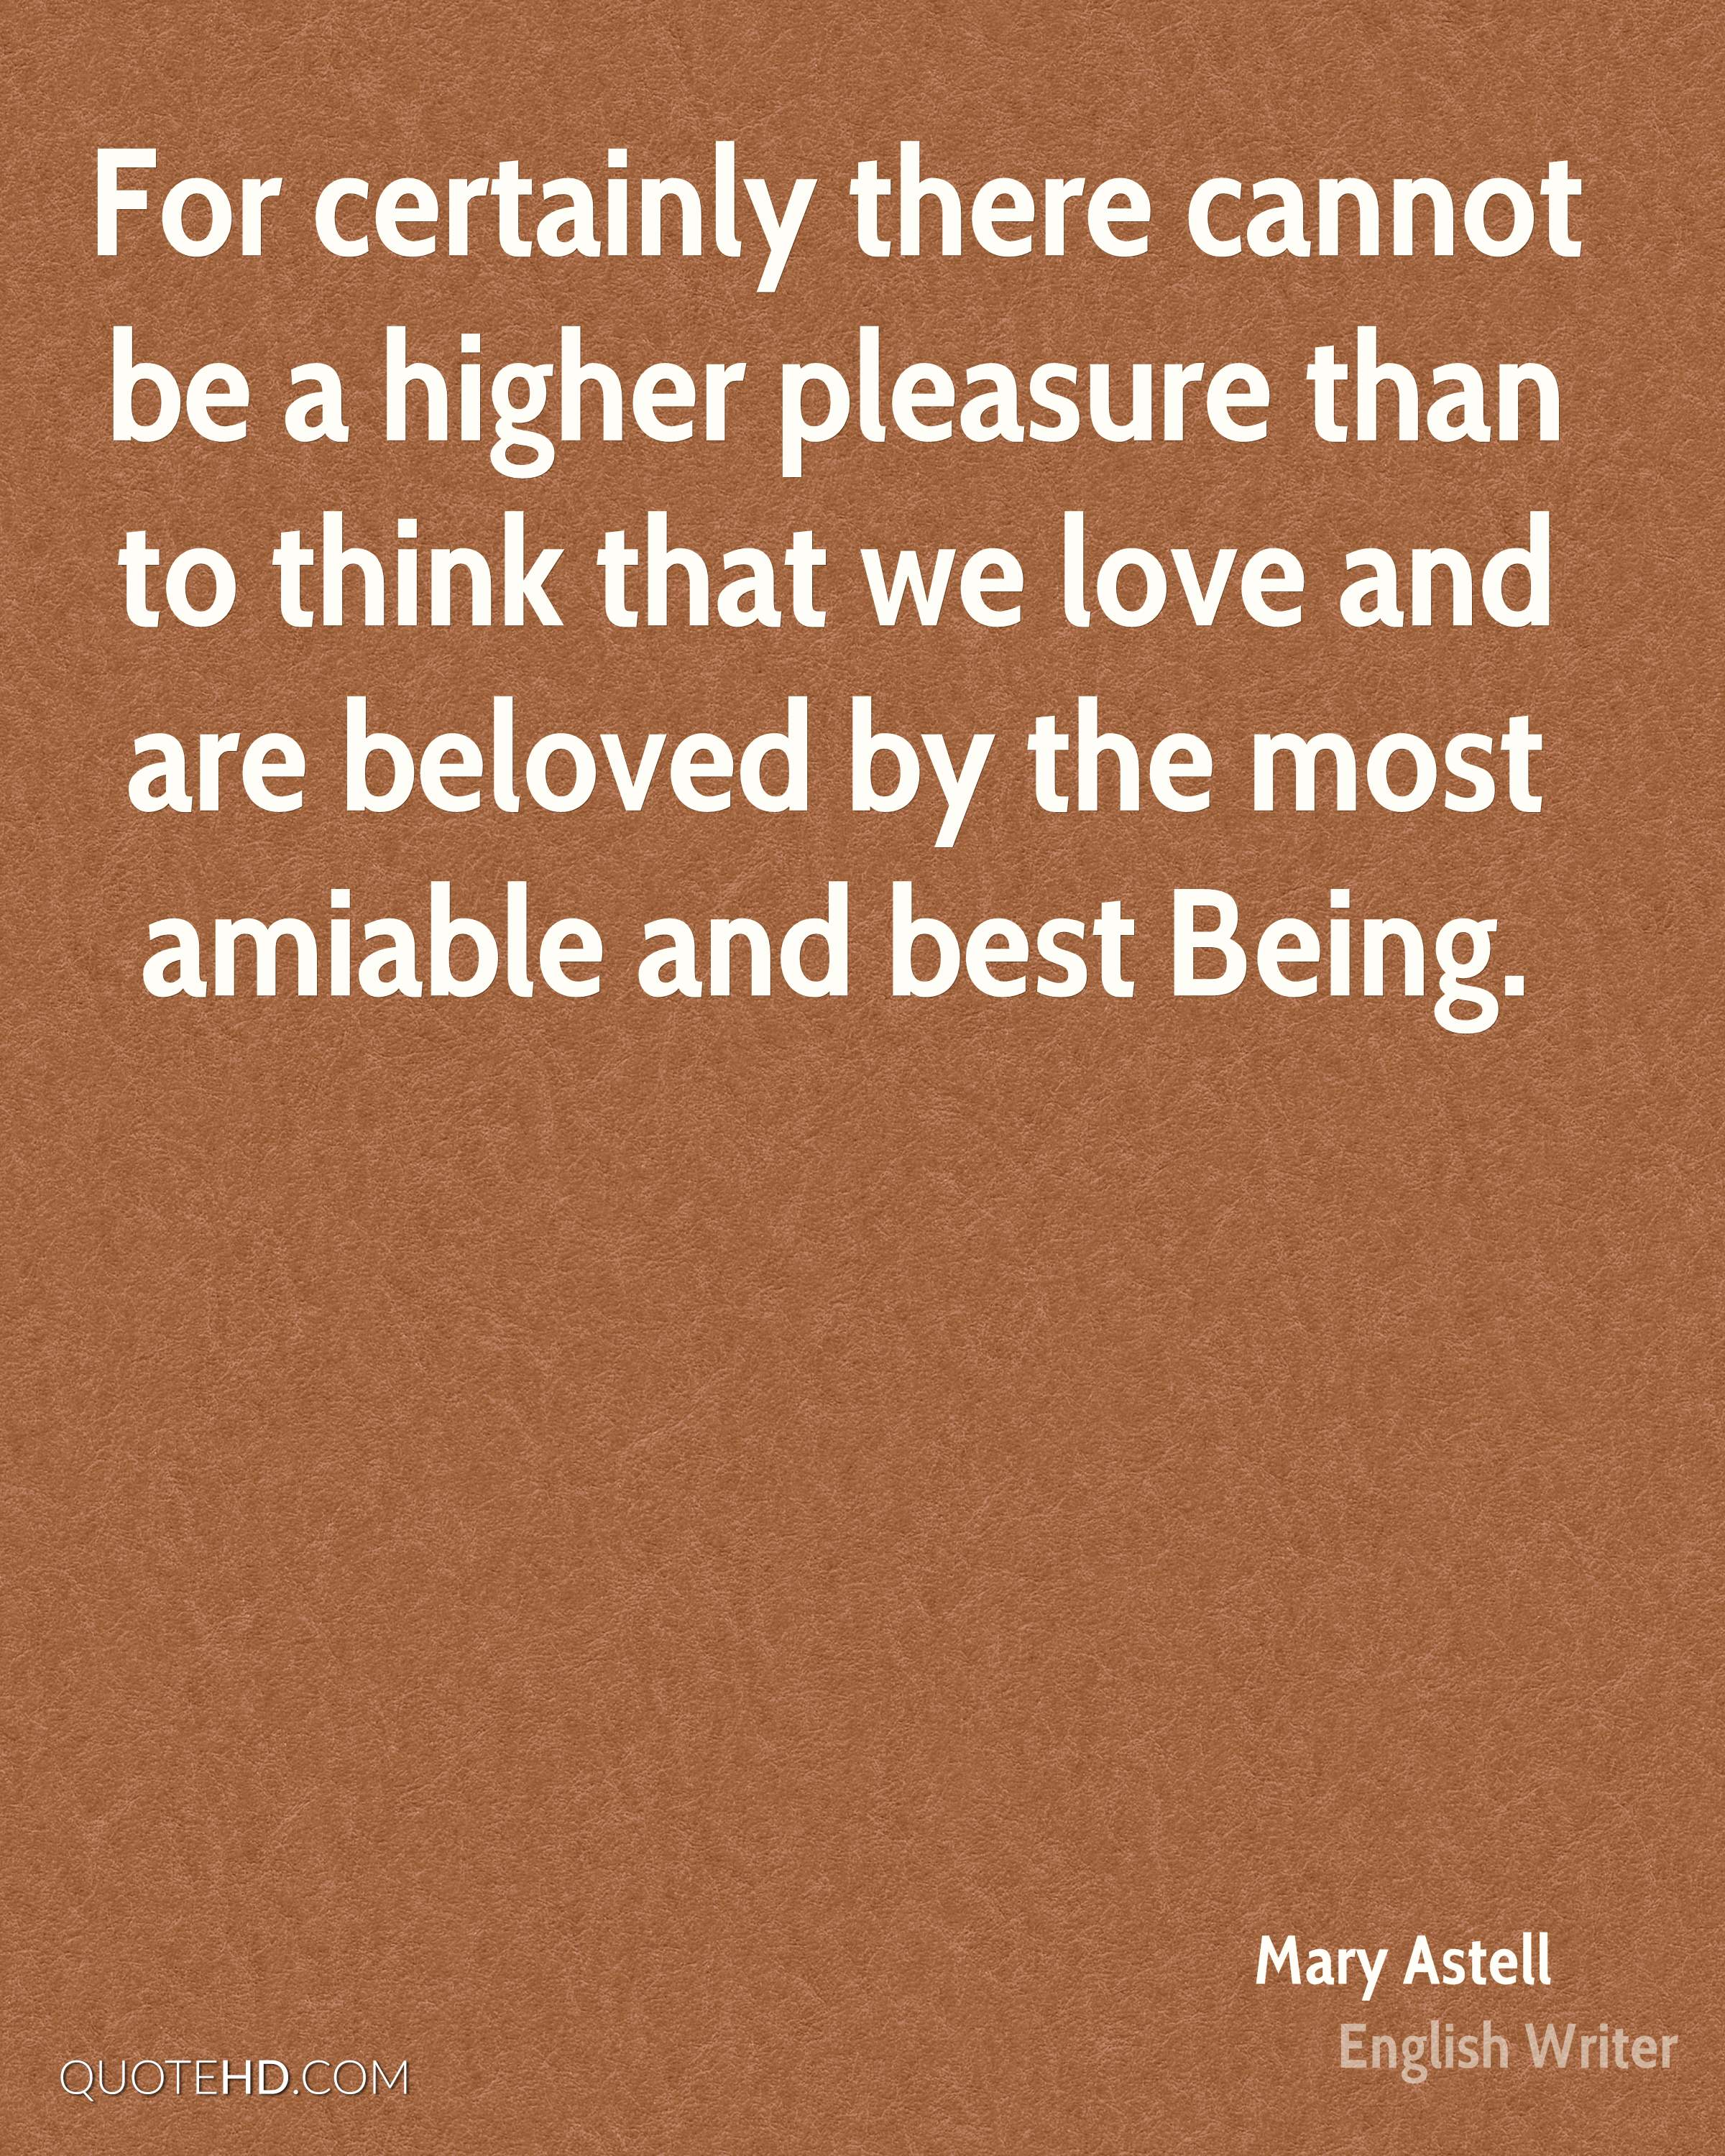 For certainly there cannot be a higher pleasure than to think that we love and are beloved by the most amiable and best Being.